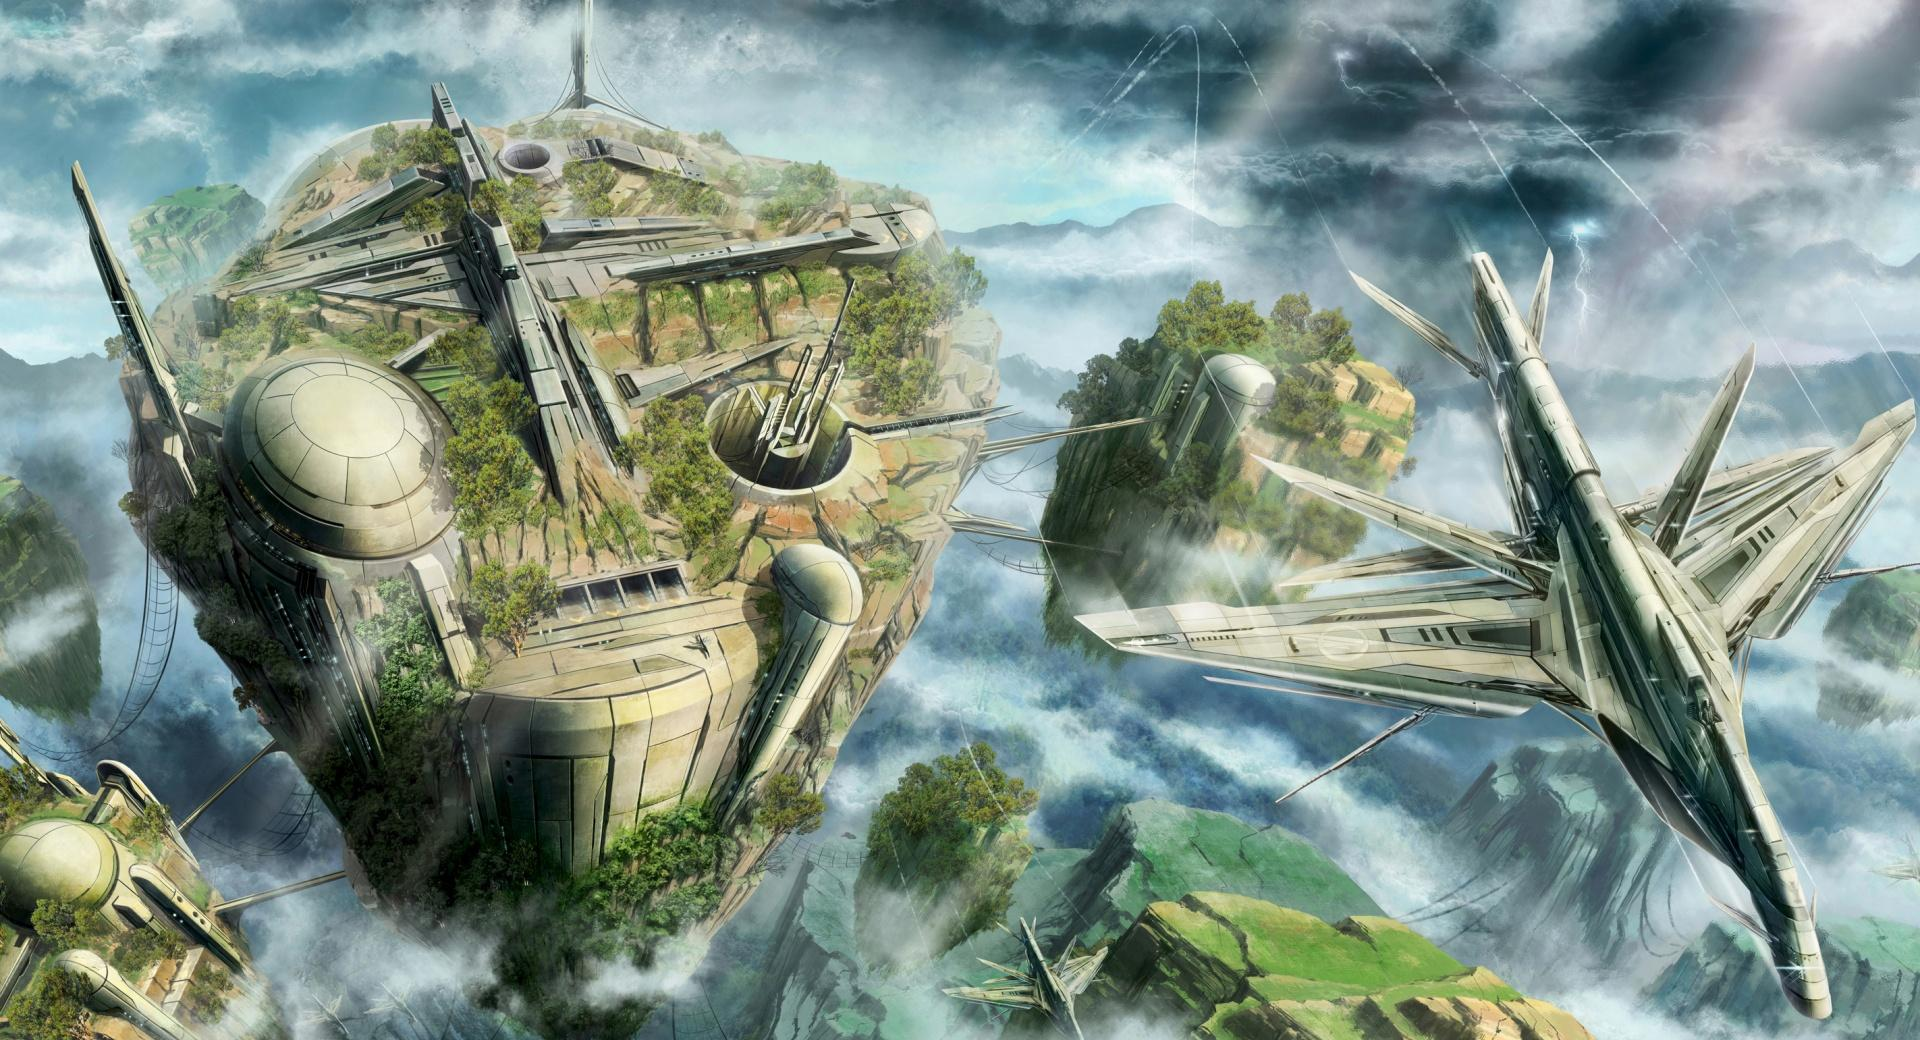 Science Fiction Scenery wallpapers HD quality